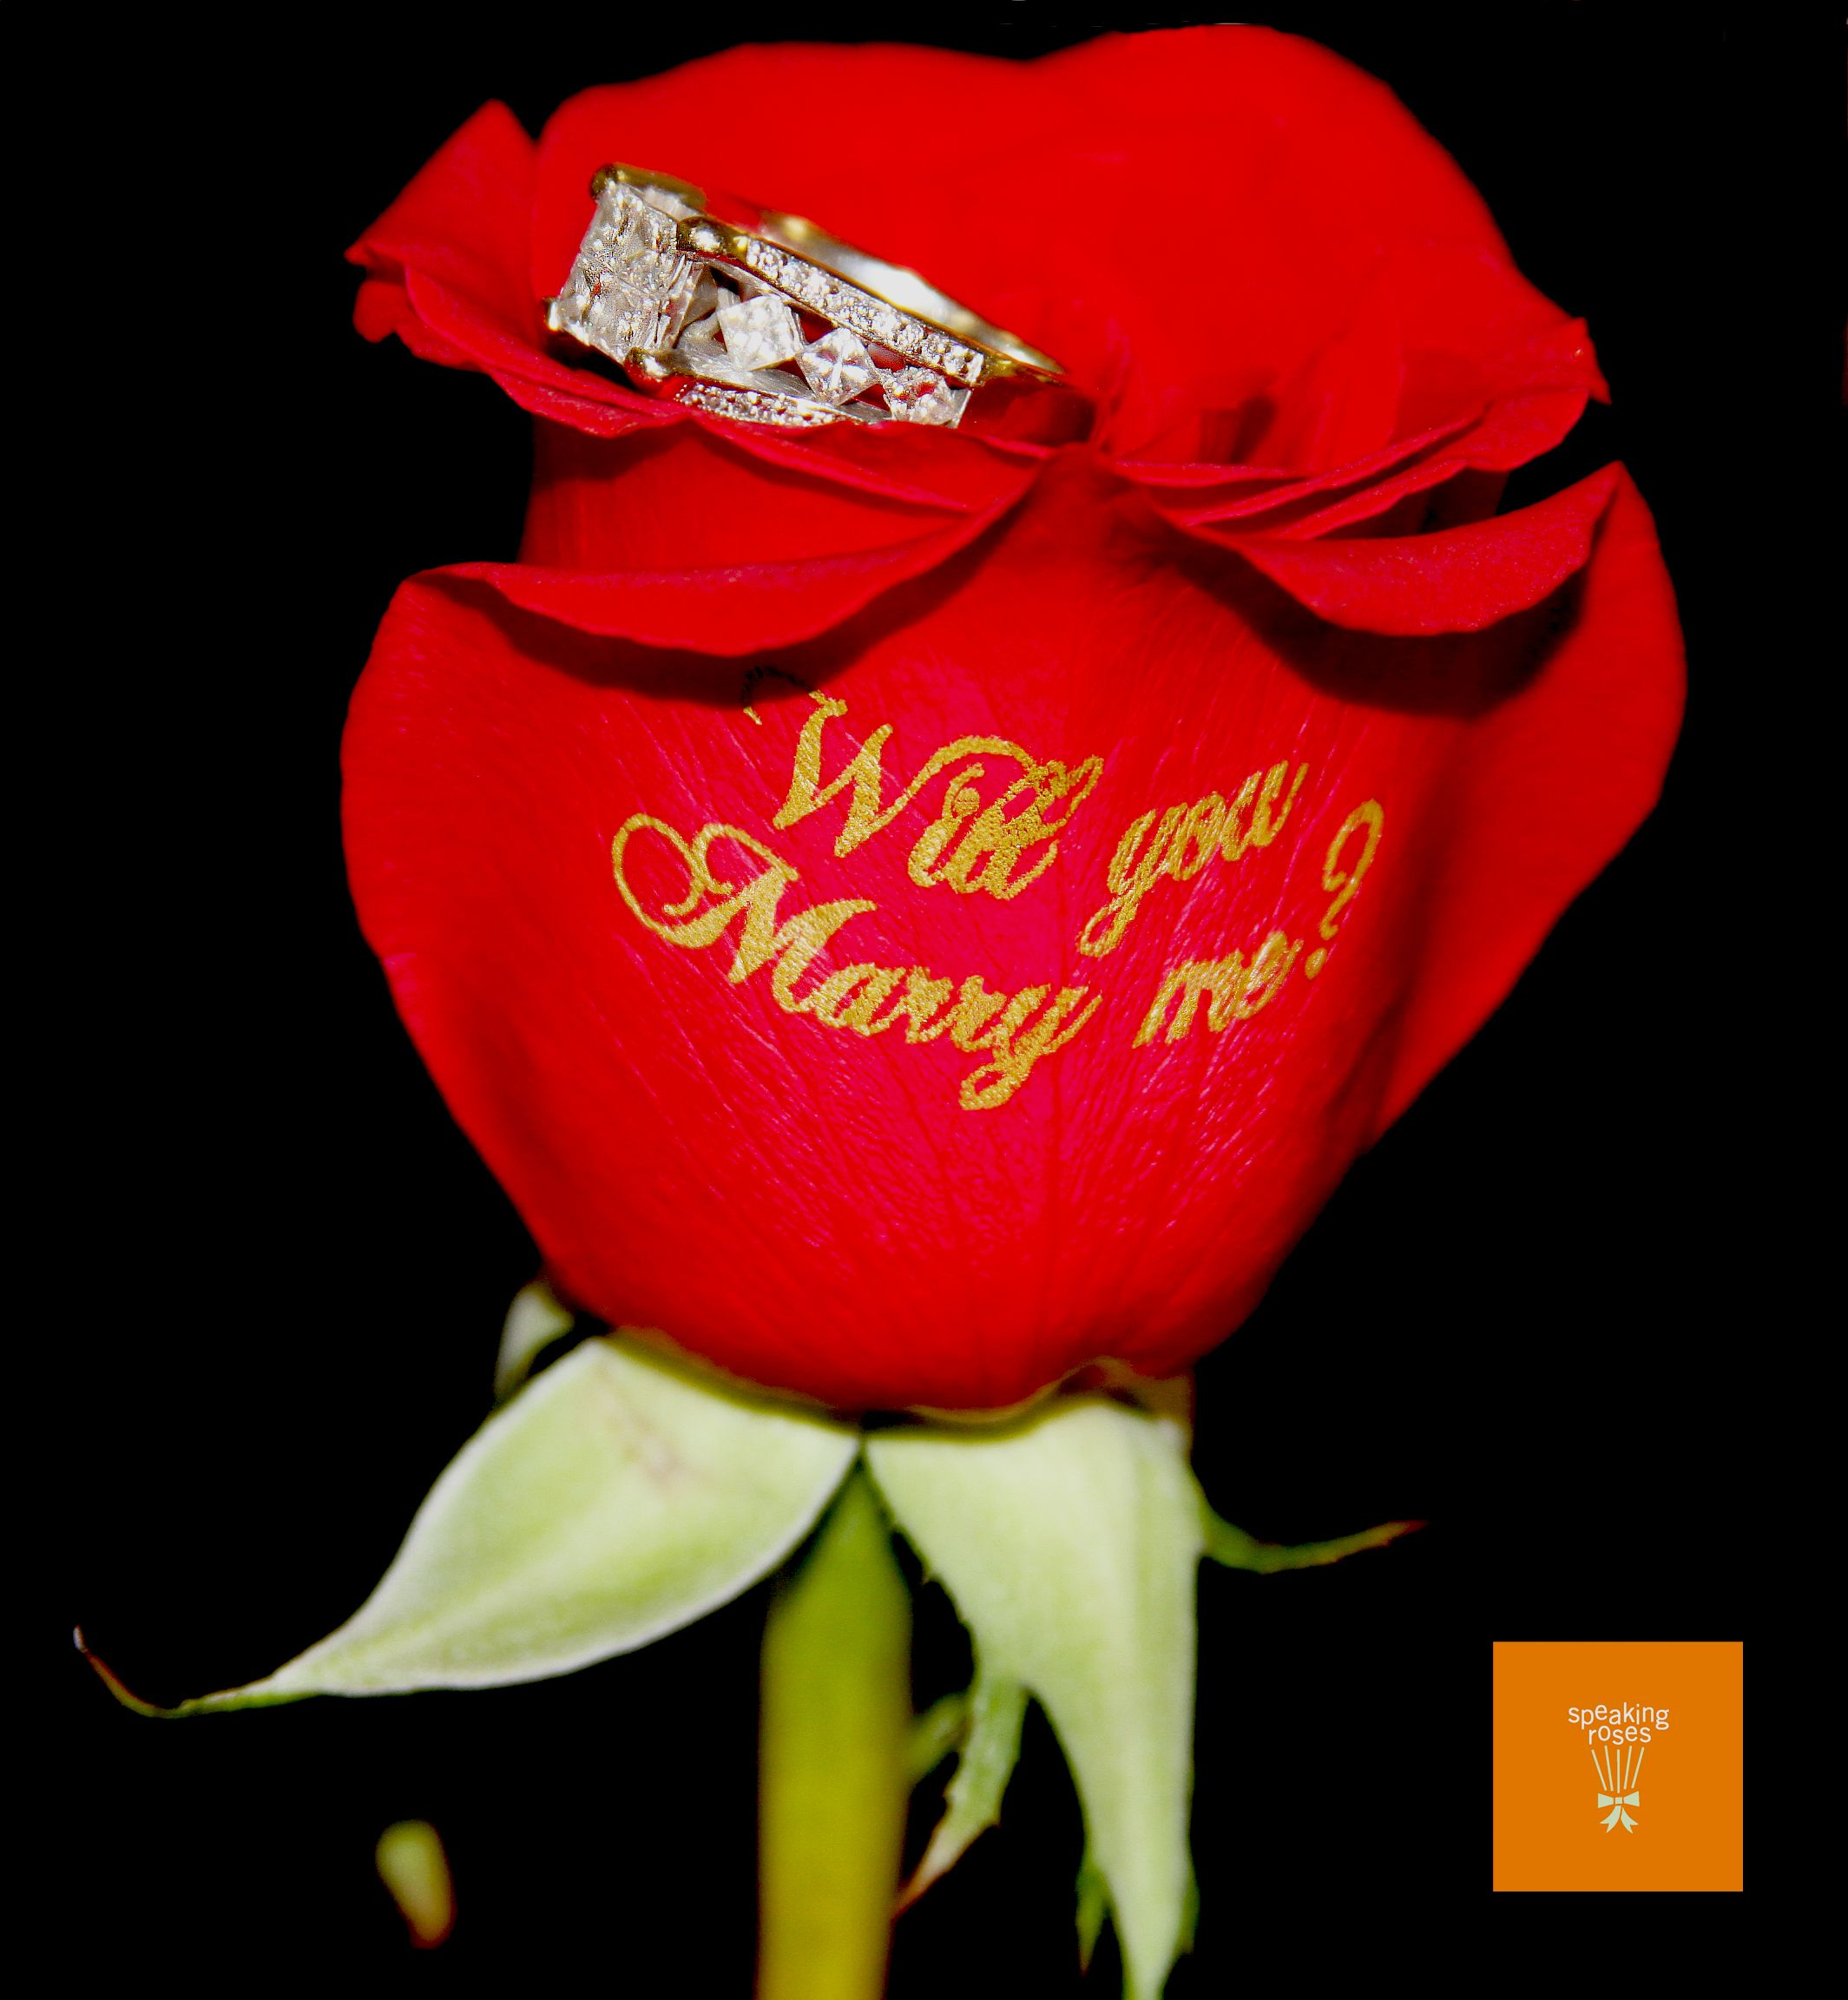 Story Most Romantic Wedding Songs: Tomorrow Is Proposal Day! What's The Most Romantic